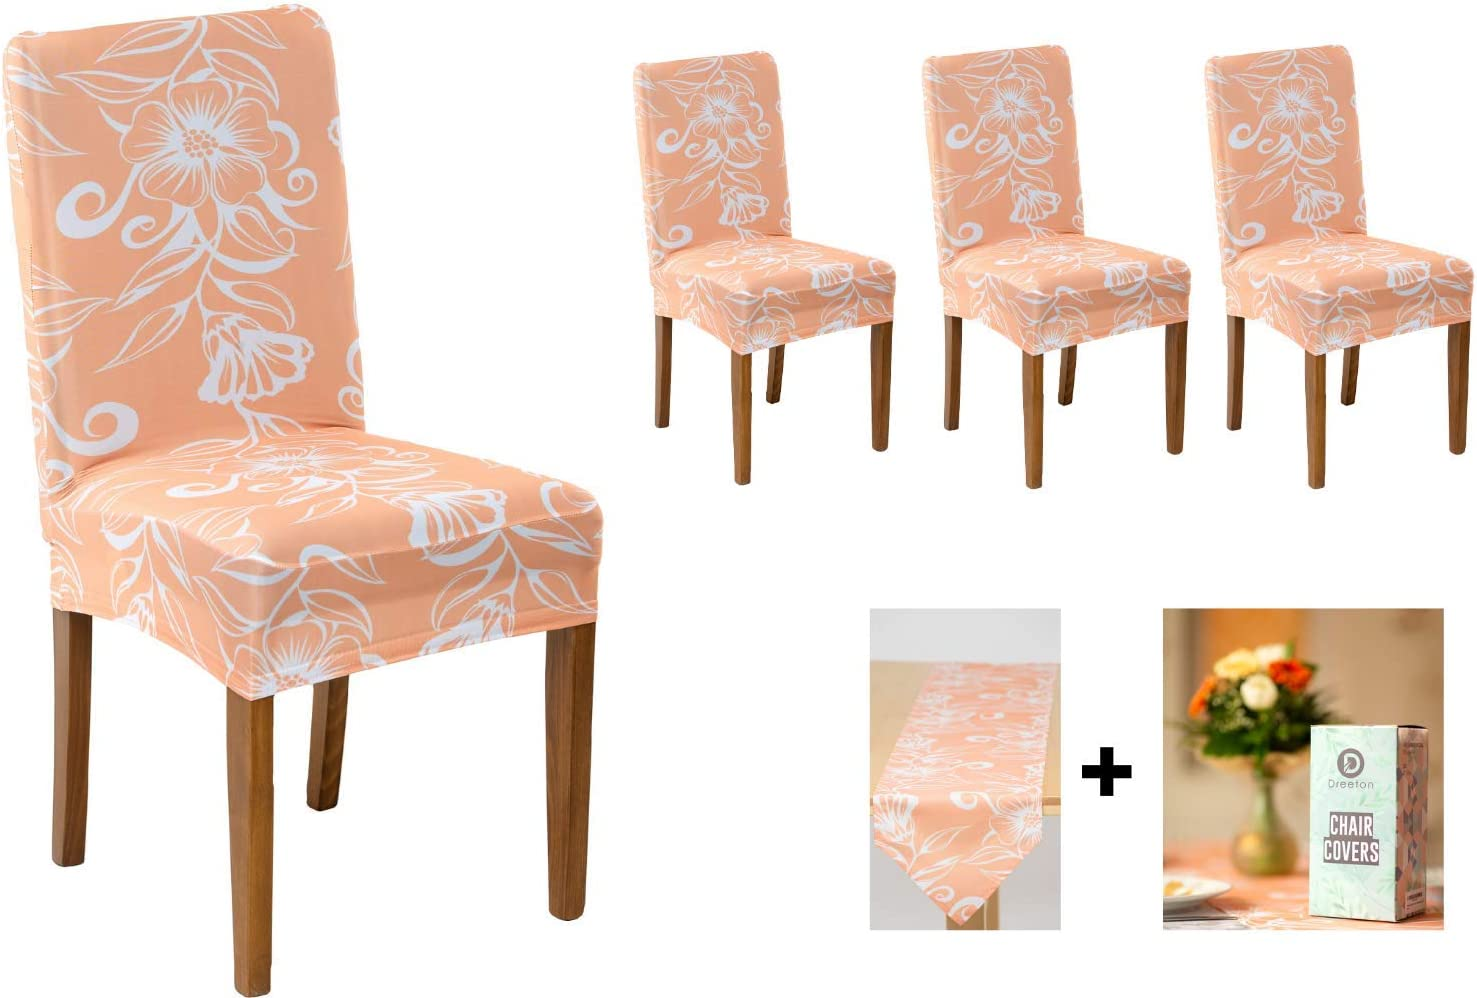 Dreeton Dining Room Chair Covers Set of 4 with Table Runner, Removable and Washable Chair Seat Slipcovers, Stretch Seat Protector Hotels, Home, Restaurants, Wedding Banquet, Office, Party: Kitchen & Dining